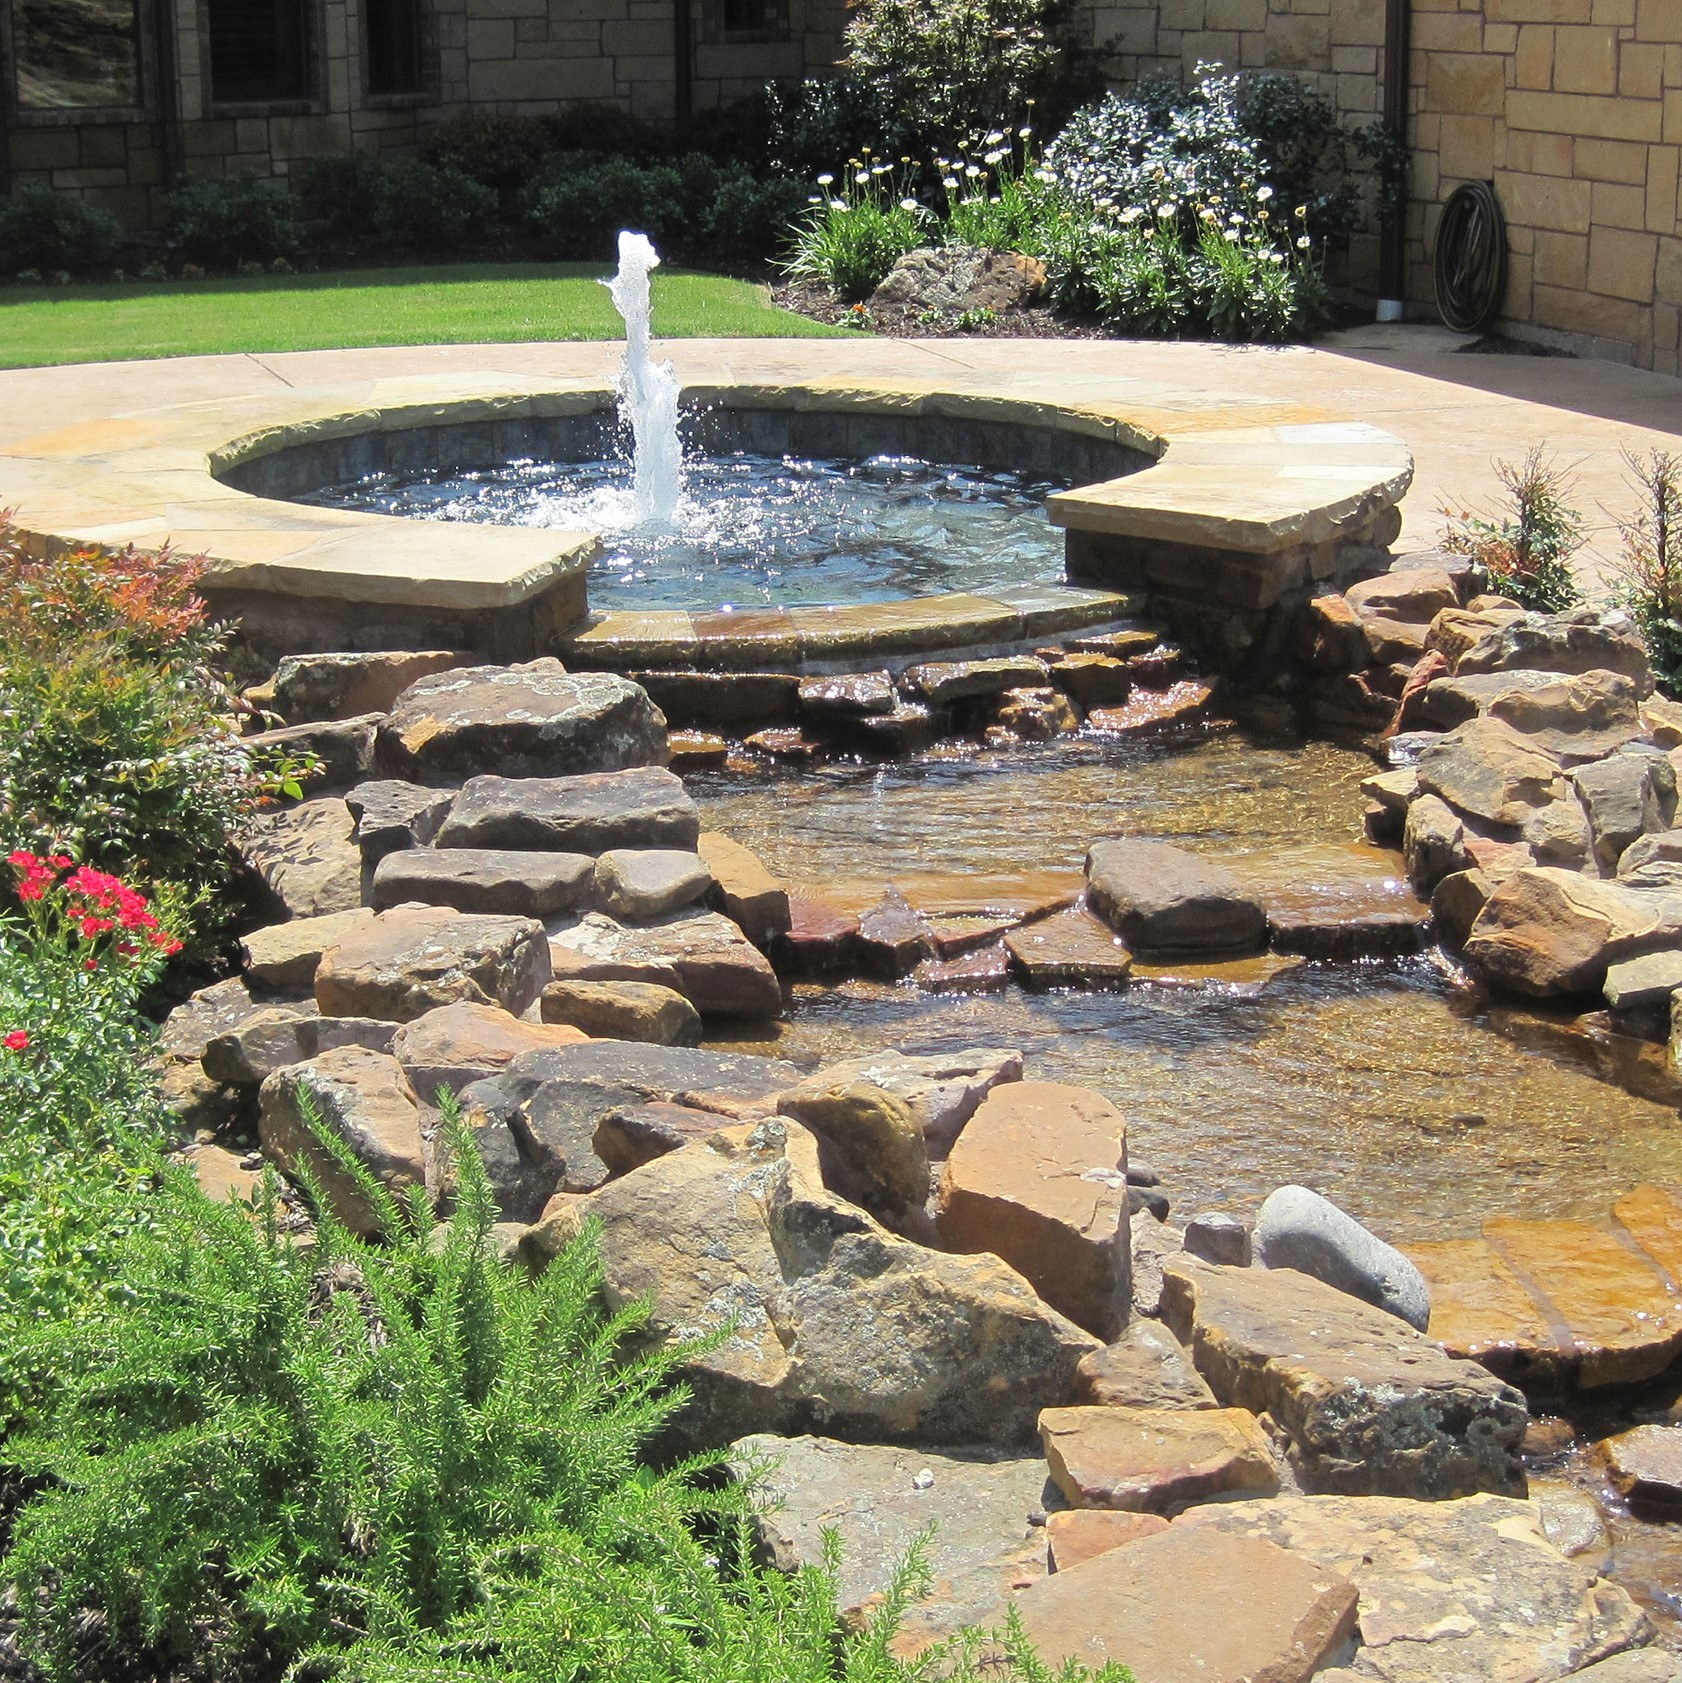 pool services for fountain and rock area in home.